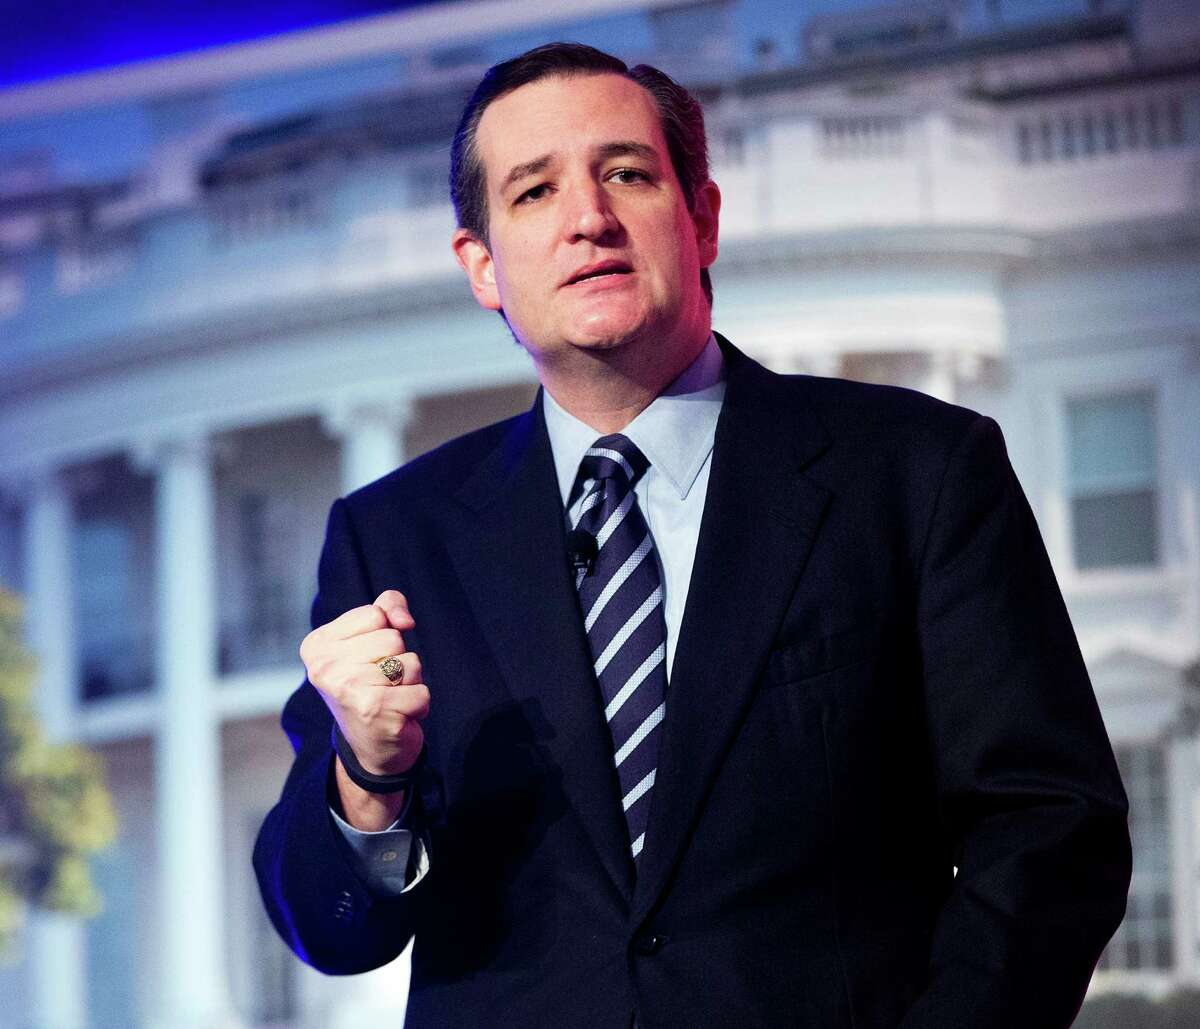 In this March 10, 2015, photo, Sen. Ted Cruz, R-Texas, speaks at the International Association of Firefighters (IAFF) Legislative Conference and Presidential Forum in Washington. A pair of lawyers who have represented presidents from both parties at the Supreme Court says Cruz is legally eligible to run for president. Solicitor General Paul Clement and former Obama acting Solicitor General Neal Katyal are writing in the Harvard Law Review that the Canadian-born Cruz meets the constitutional standard to be a presidential contender. The bipartisan duo's commentary comes as Cruz moves toward an expected White House run.